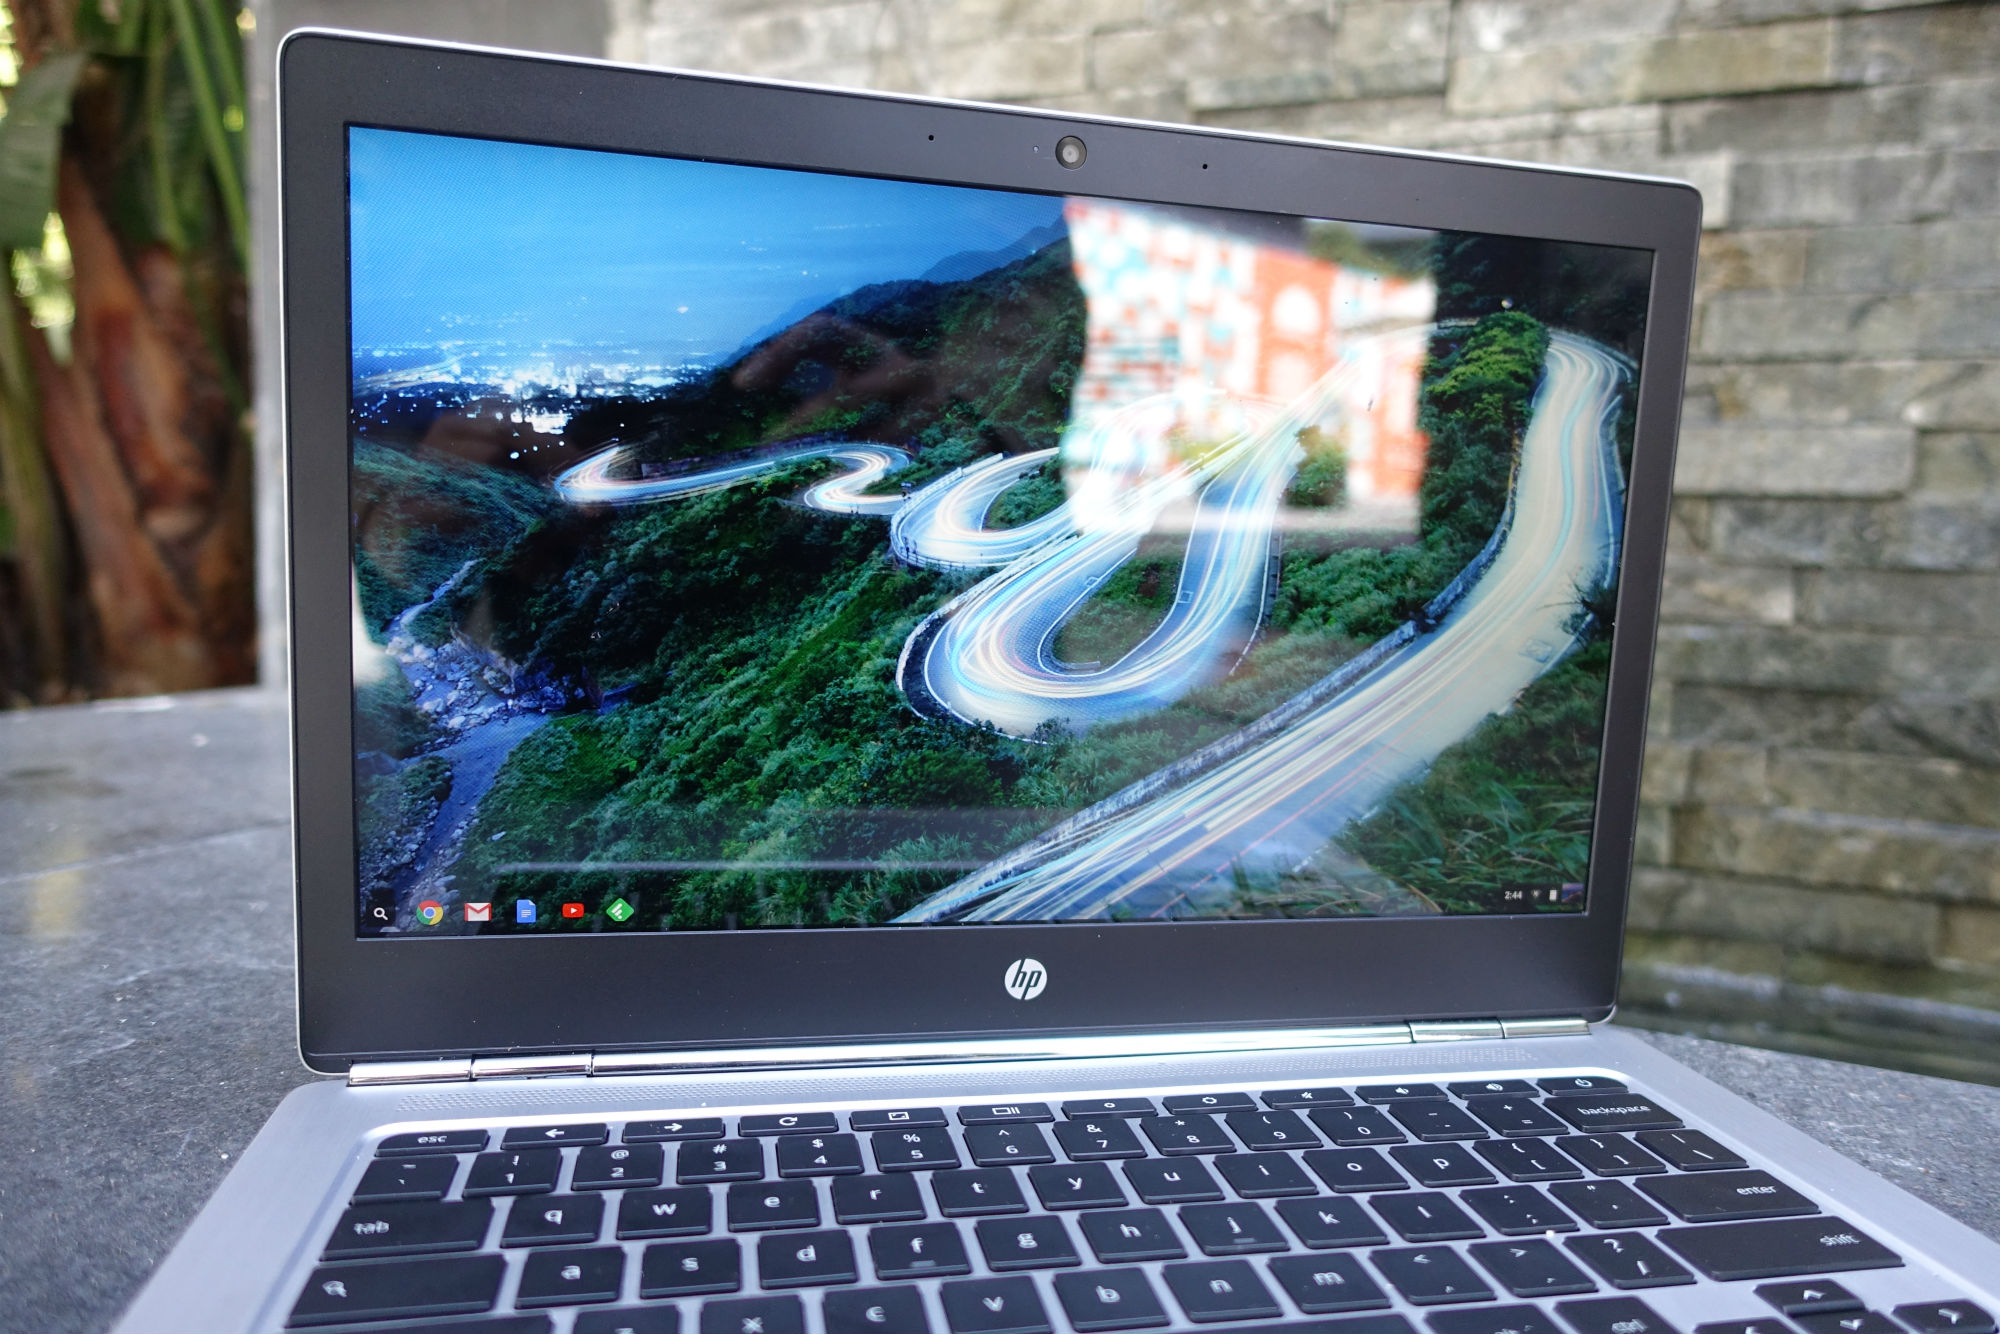 hpchromebook13 display.jpg